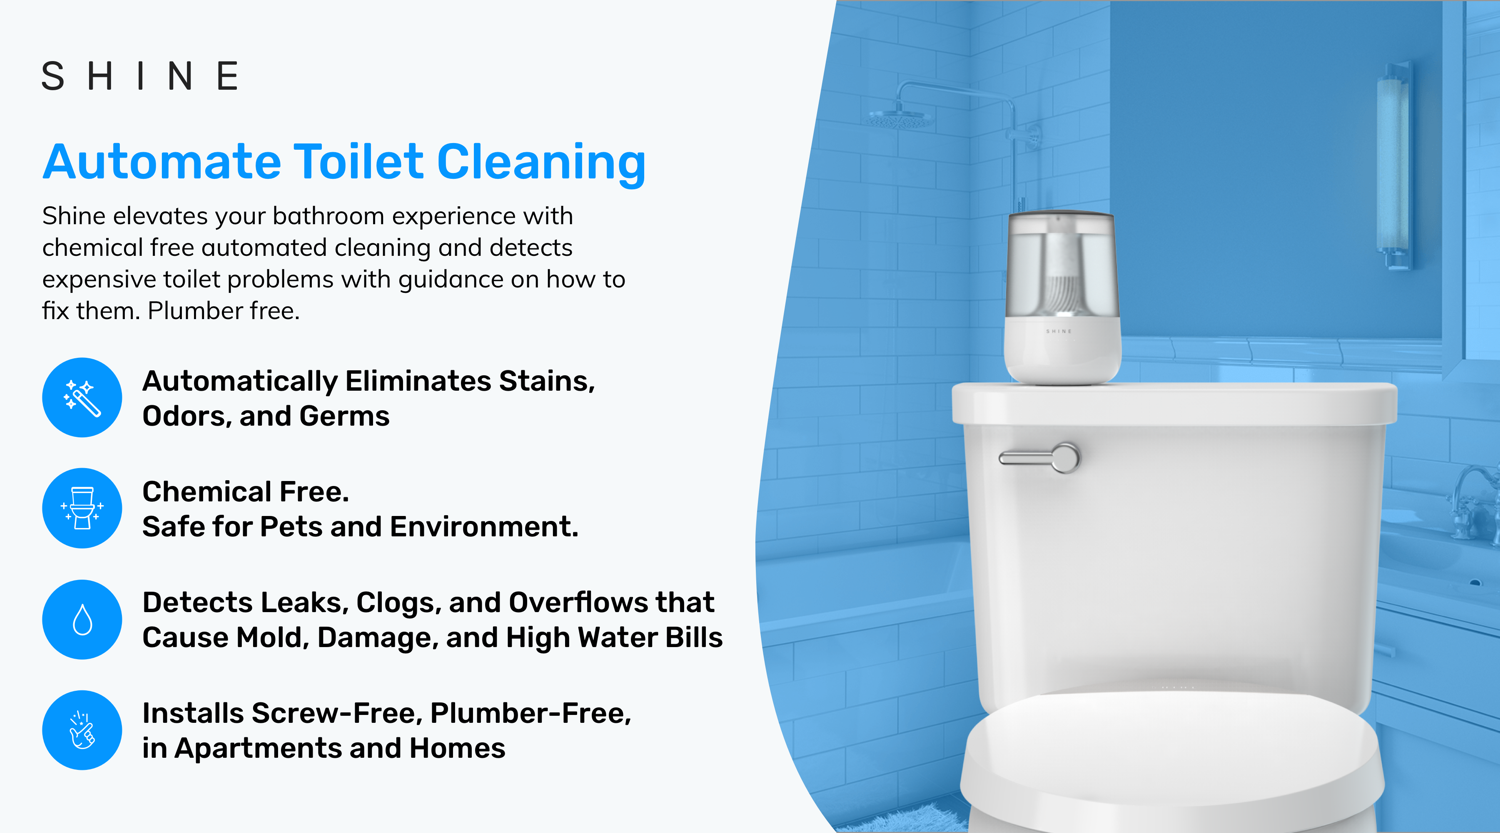 Https Try Shinebathroom Com Referralpage Referralcode Dmmevv1 Refsource Copy Toilet Cleaning Bathroom Smells Cleaning